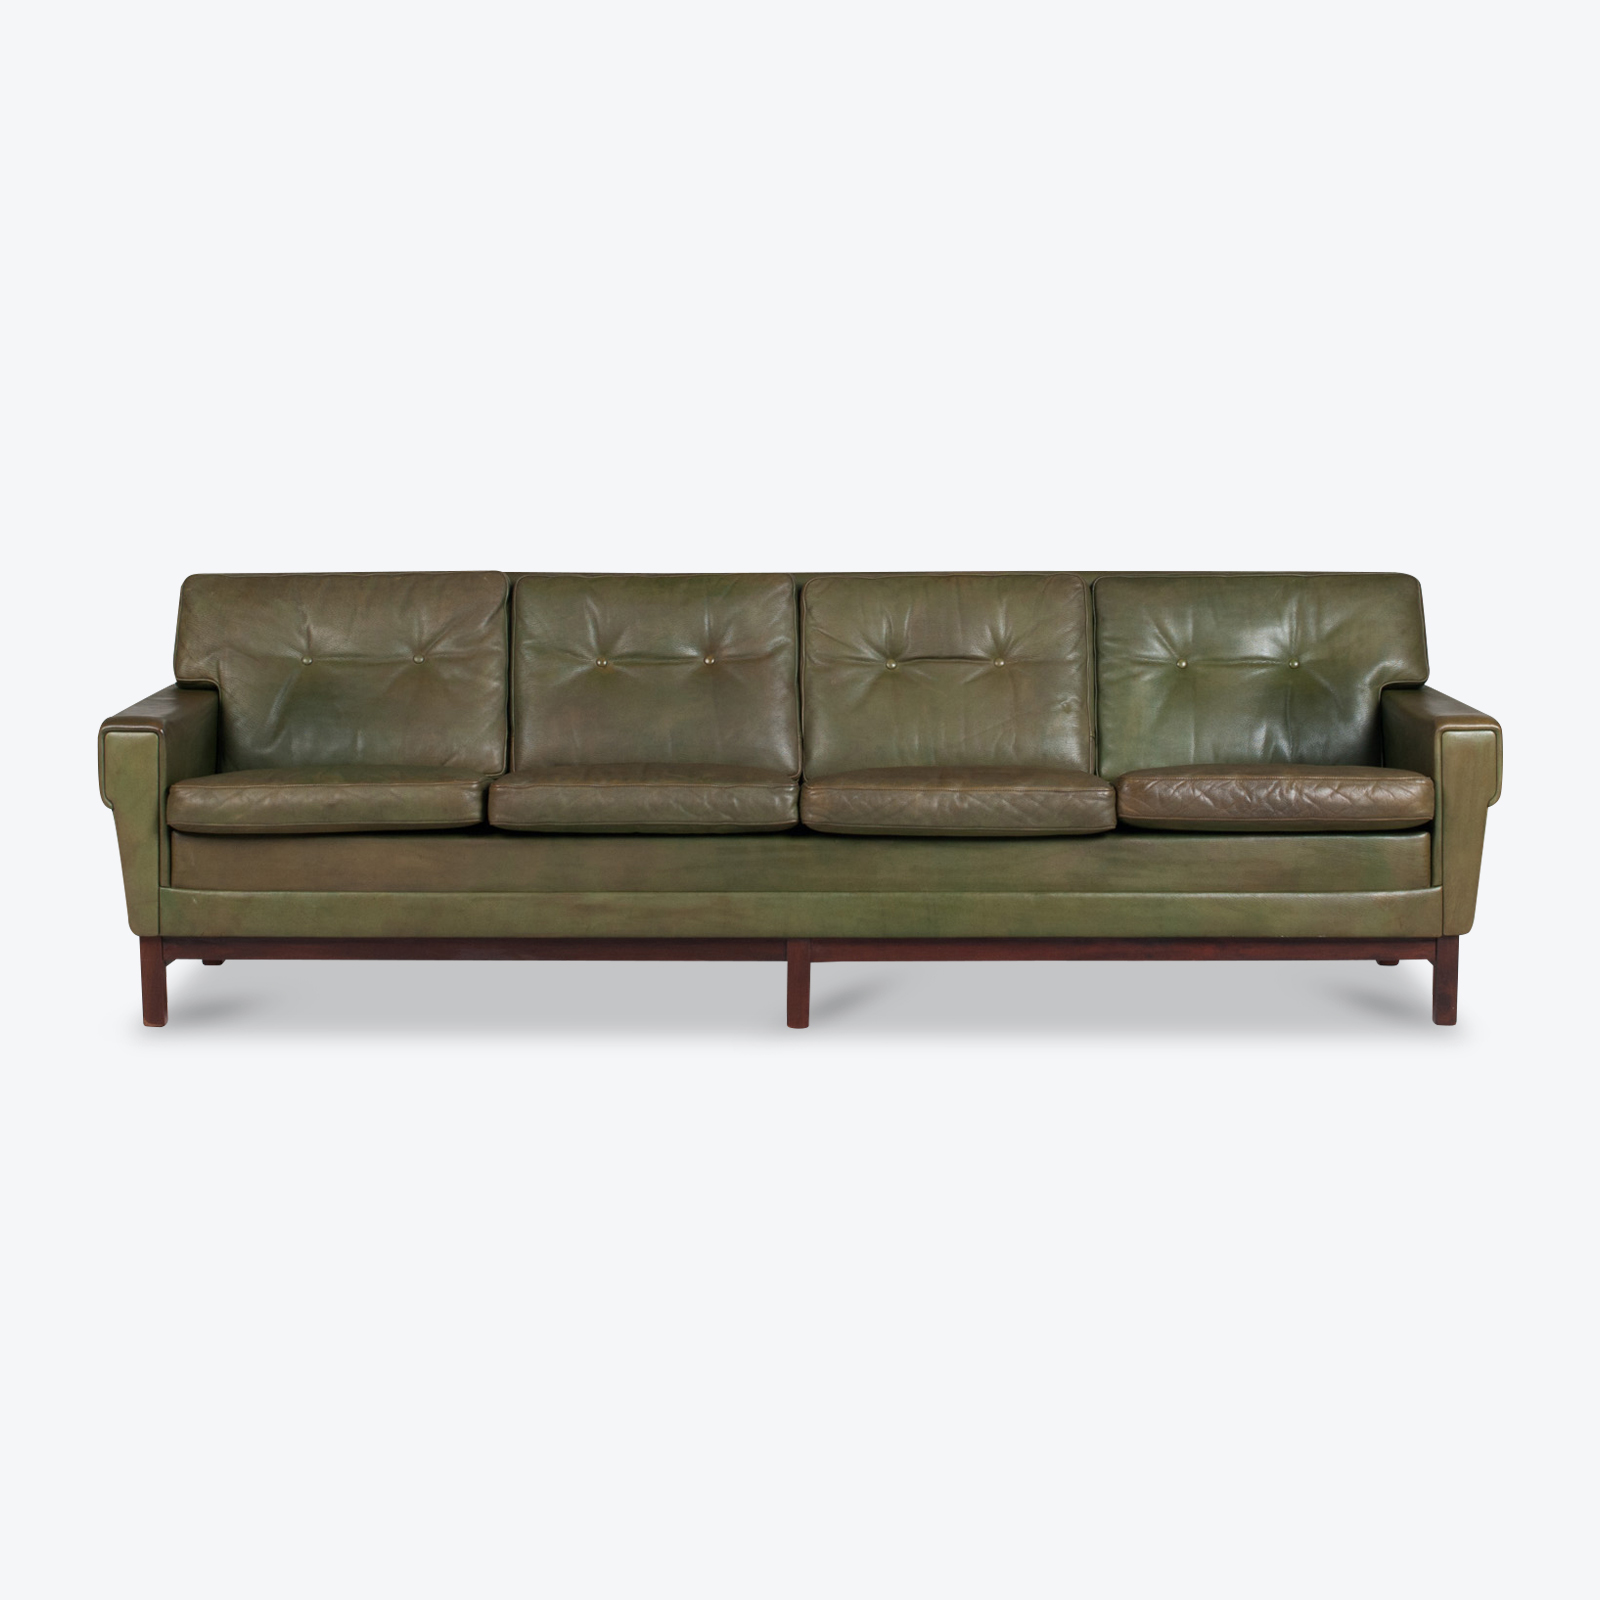 4 Seat Sofa In Olive Leather 1960s Denmark 01